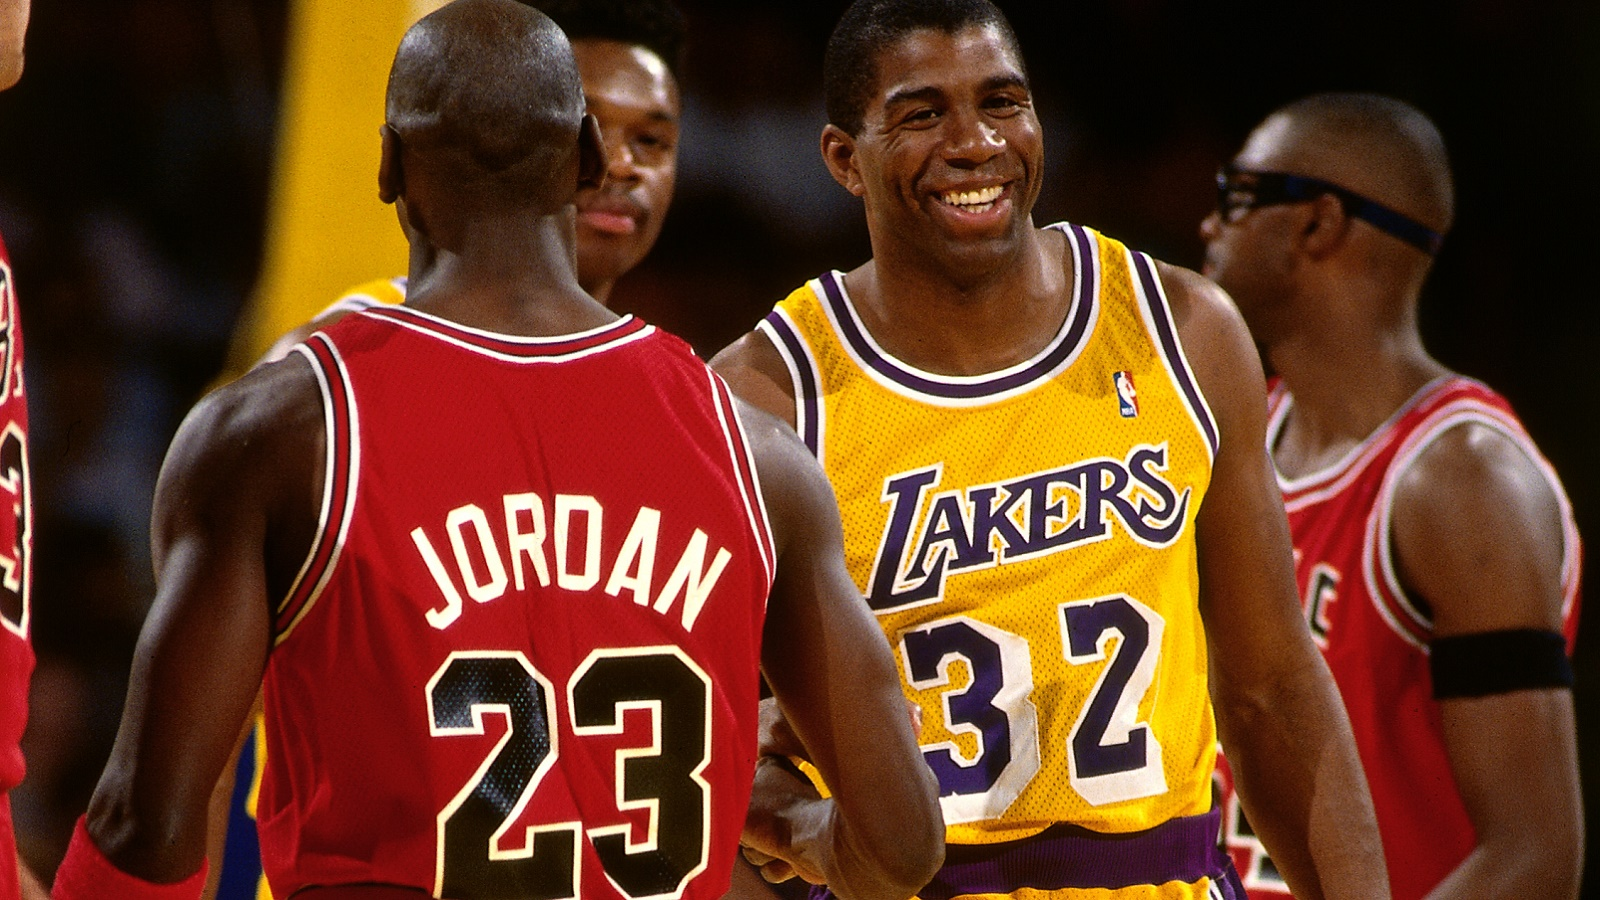 INGLEWOOD, CA- JUNE 9: Magic Johnson #32 of the Los Angeles Lakers and Michael Jordan #23 of the Chicago Bulls during Game Four of the 1991 NBA Finals on June 9, 1991 at the Great Western Forum in Inglewood, California. NOTE TO USER: User expressly acknowledges and agrees that, by downloading and/or using this Photograph, user is consenting to the terms and conditions of the Getty Images License Agreement. Mandatory Copyright Notice: Copyright 1991 NBAE (Photo by Andrew D. Bernstein/NBAE via Getty Images)